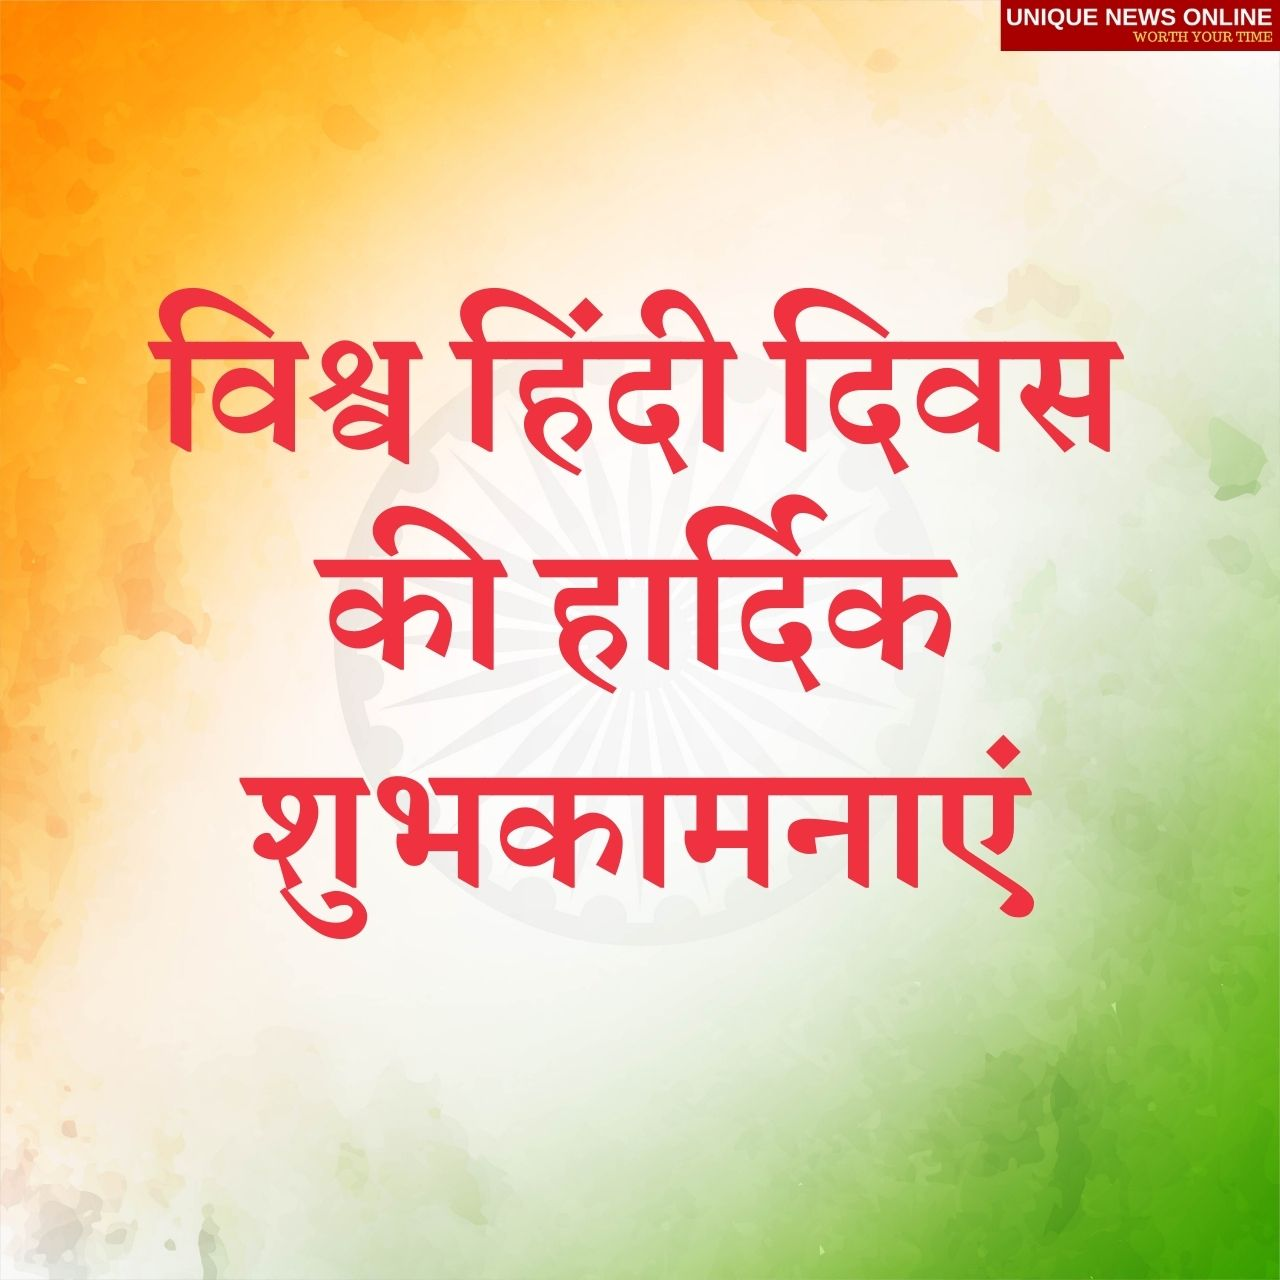 Hindi Diwas 2021 Quotes, Slogan, Poster, Messages, Wishes, and Greetings to Share